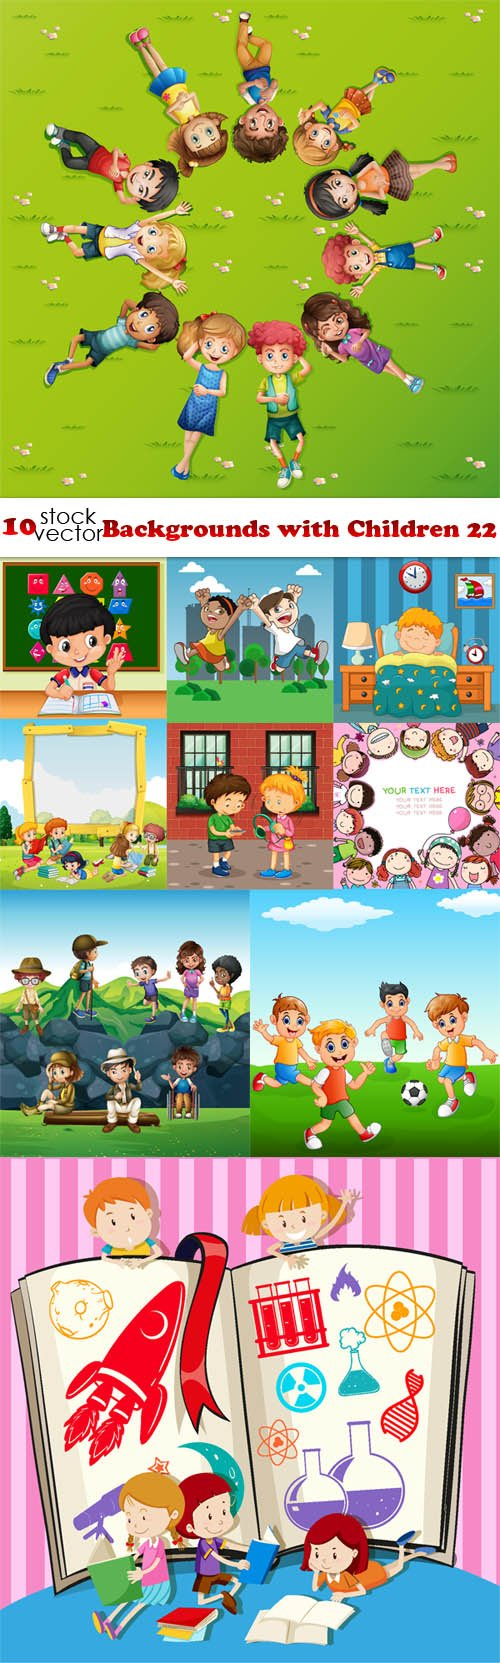 Vectors - Backgrounds with Children 22